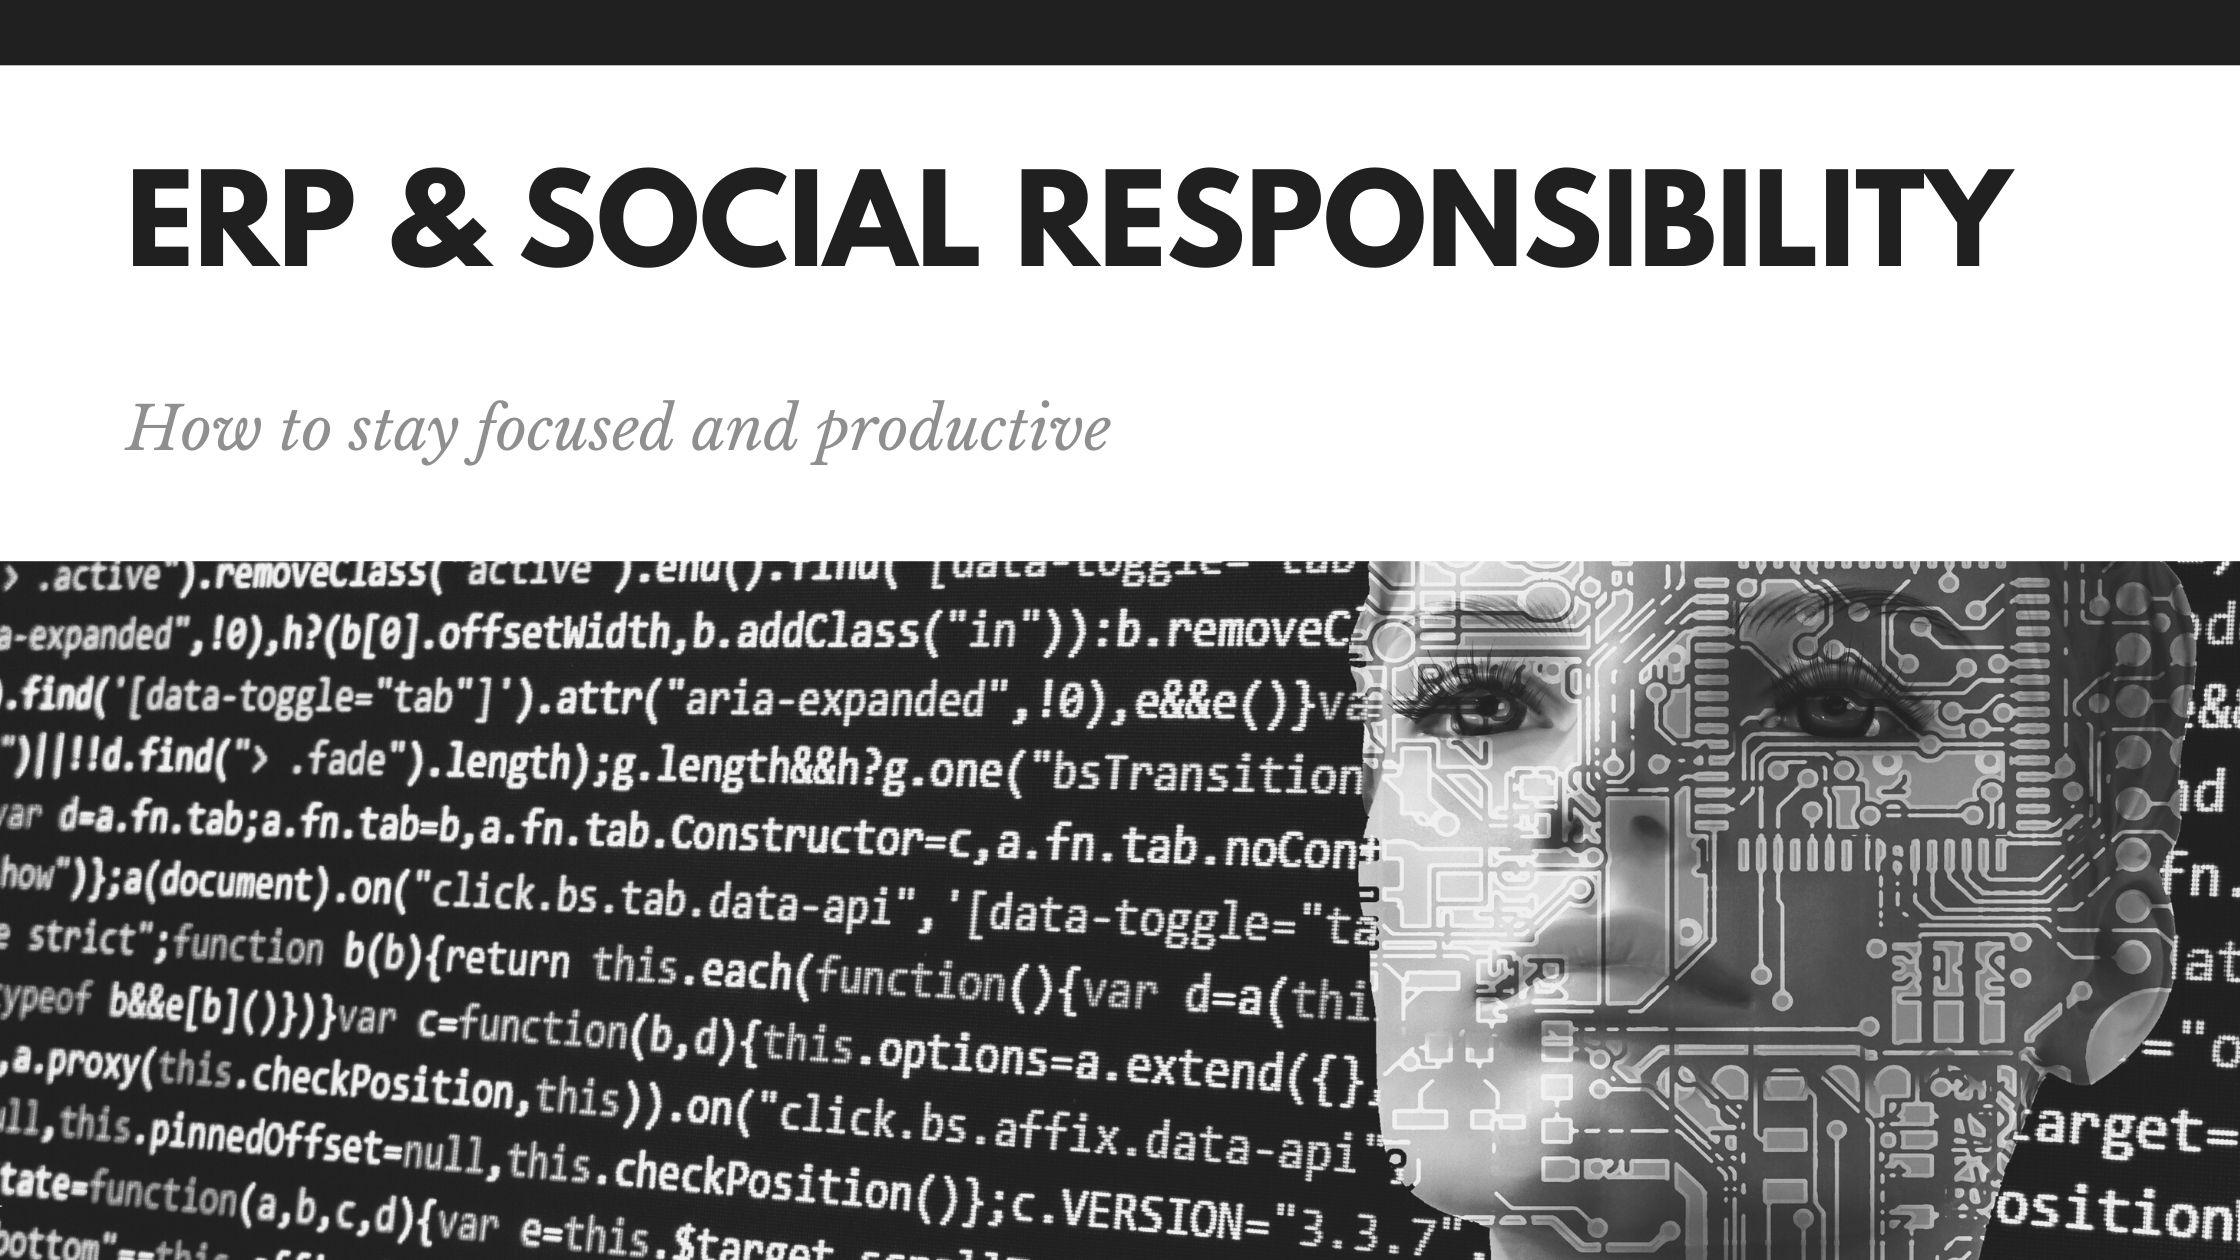 ERP & Social Responsibility | Socially Responsible ERP | Enterprise Resource Planning (ERP) and Sustainability | ERP Systems and Sustainability